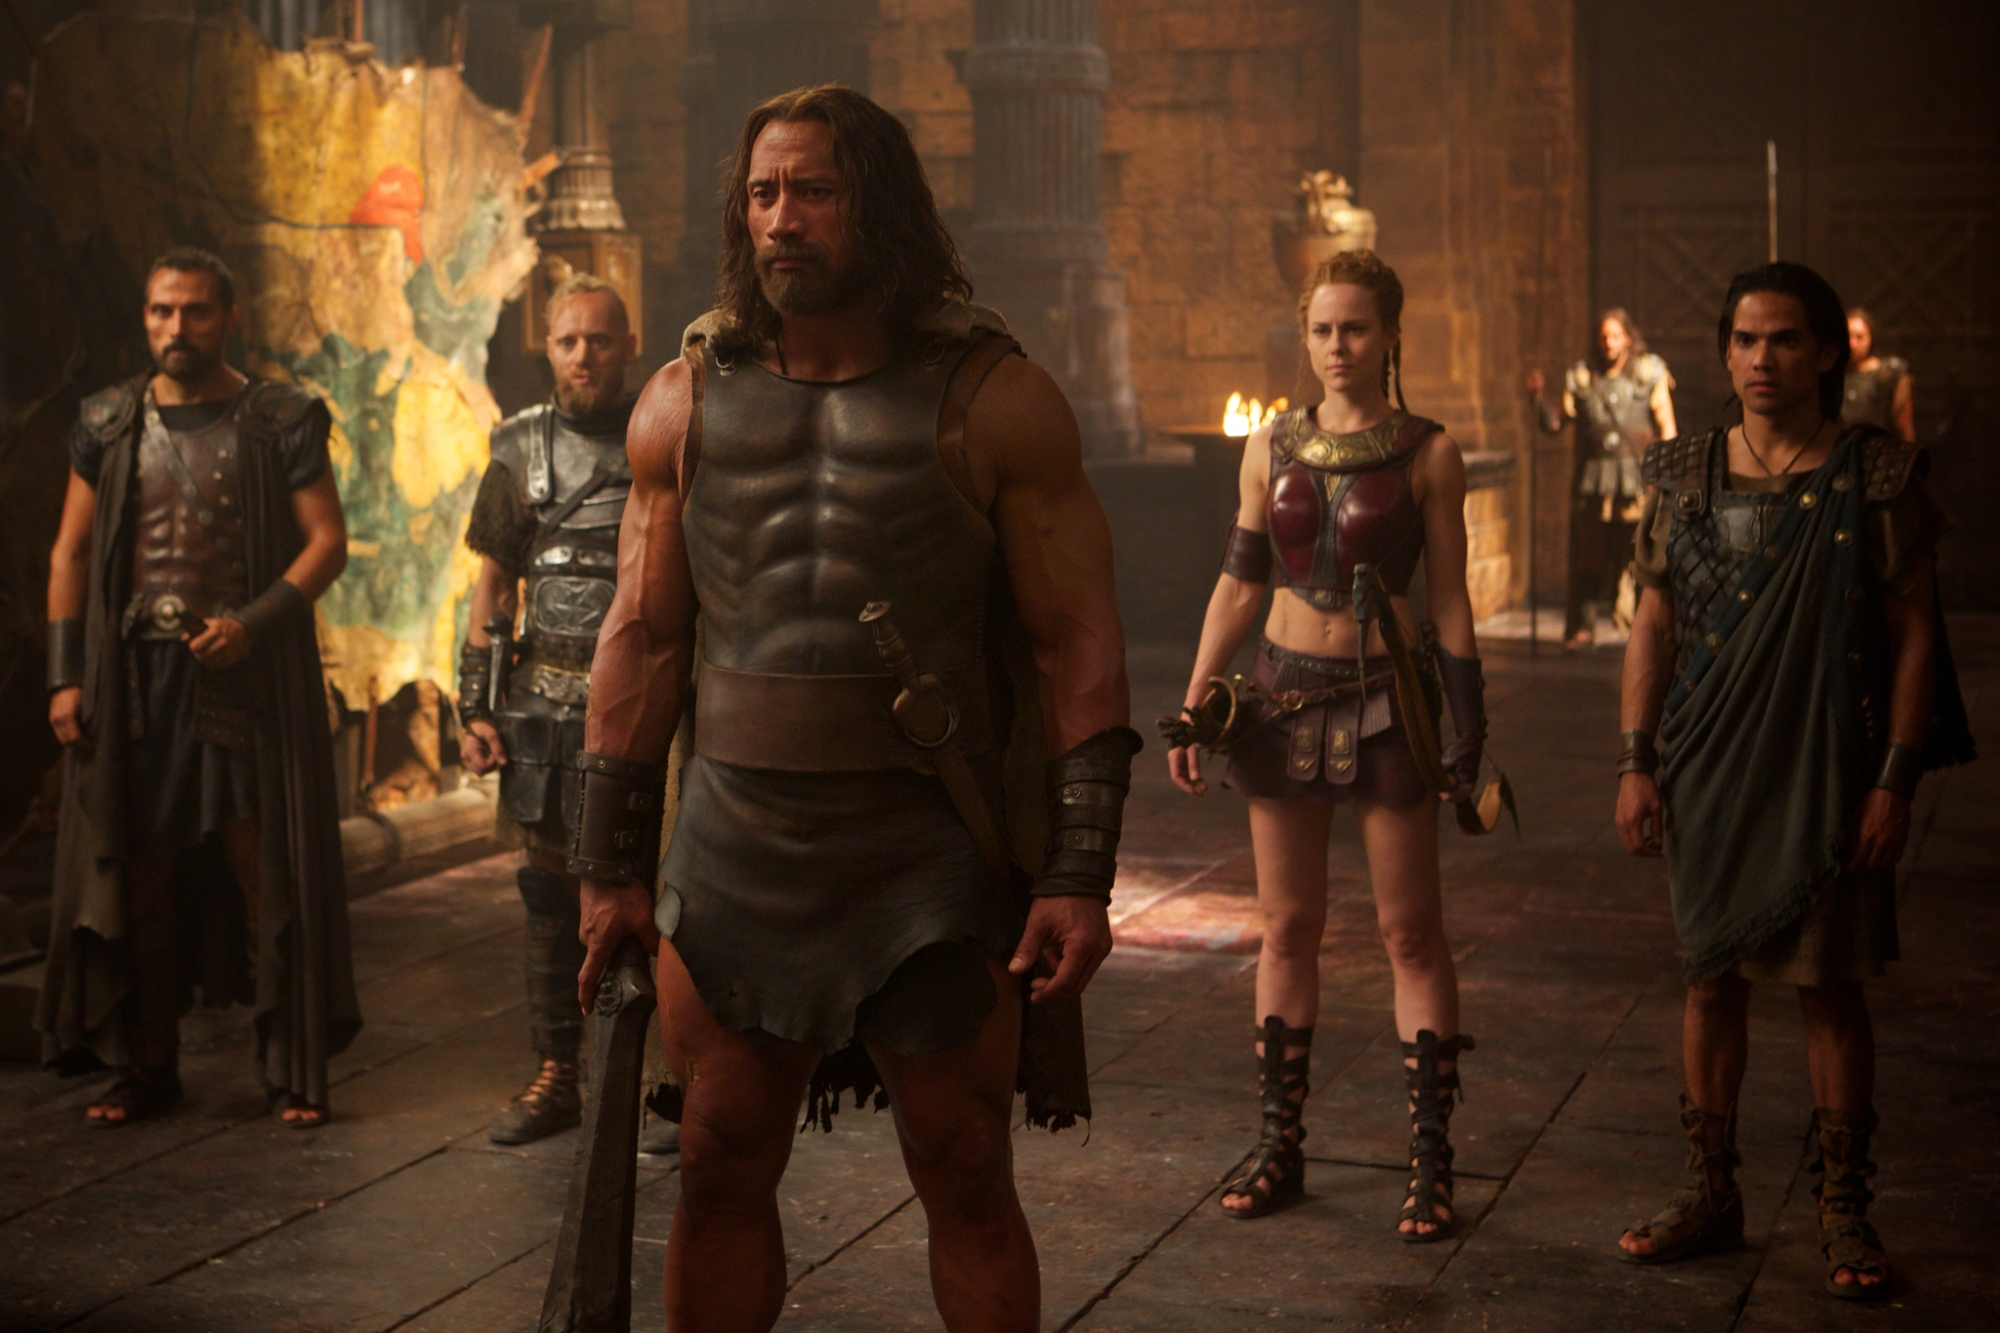 https://revistapantallas.files.wordpress.com/2014/08/rufus-sewell-aksel-hennie-dwayne-johnson-and-reece-ritchie-in-hercules-2014-movie-image.jpg